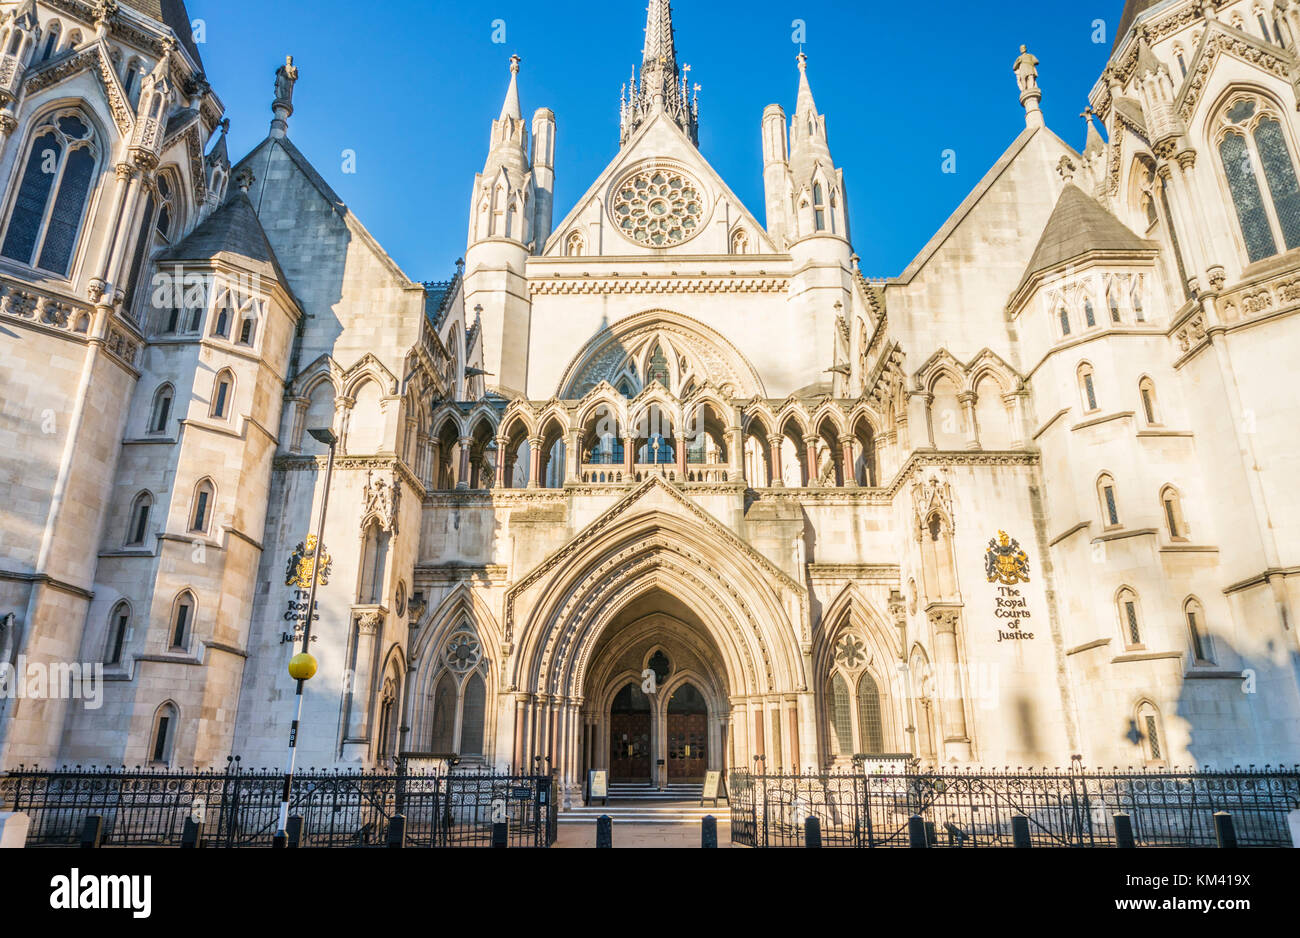 The Royal Courts of Justice London Royal Courts of Justice exterior England uk go  europe - Stock Image